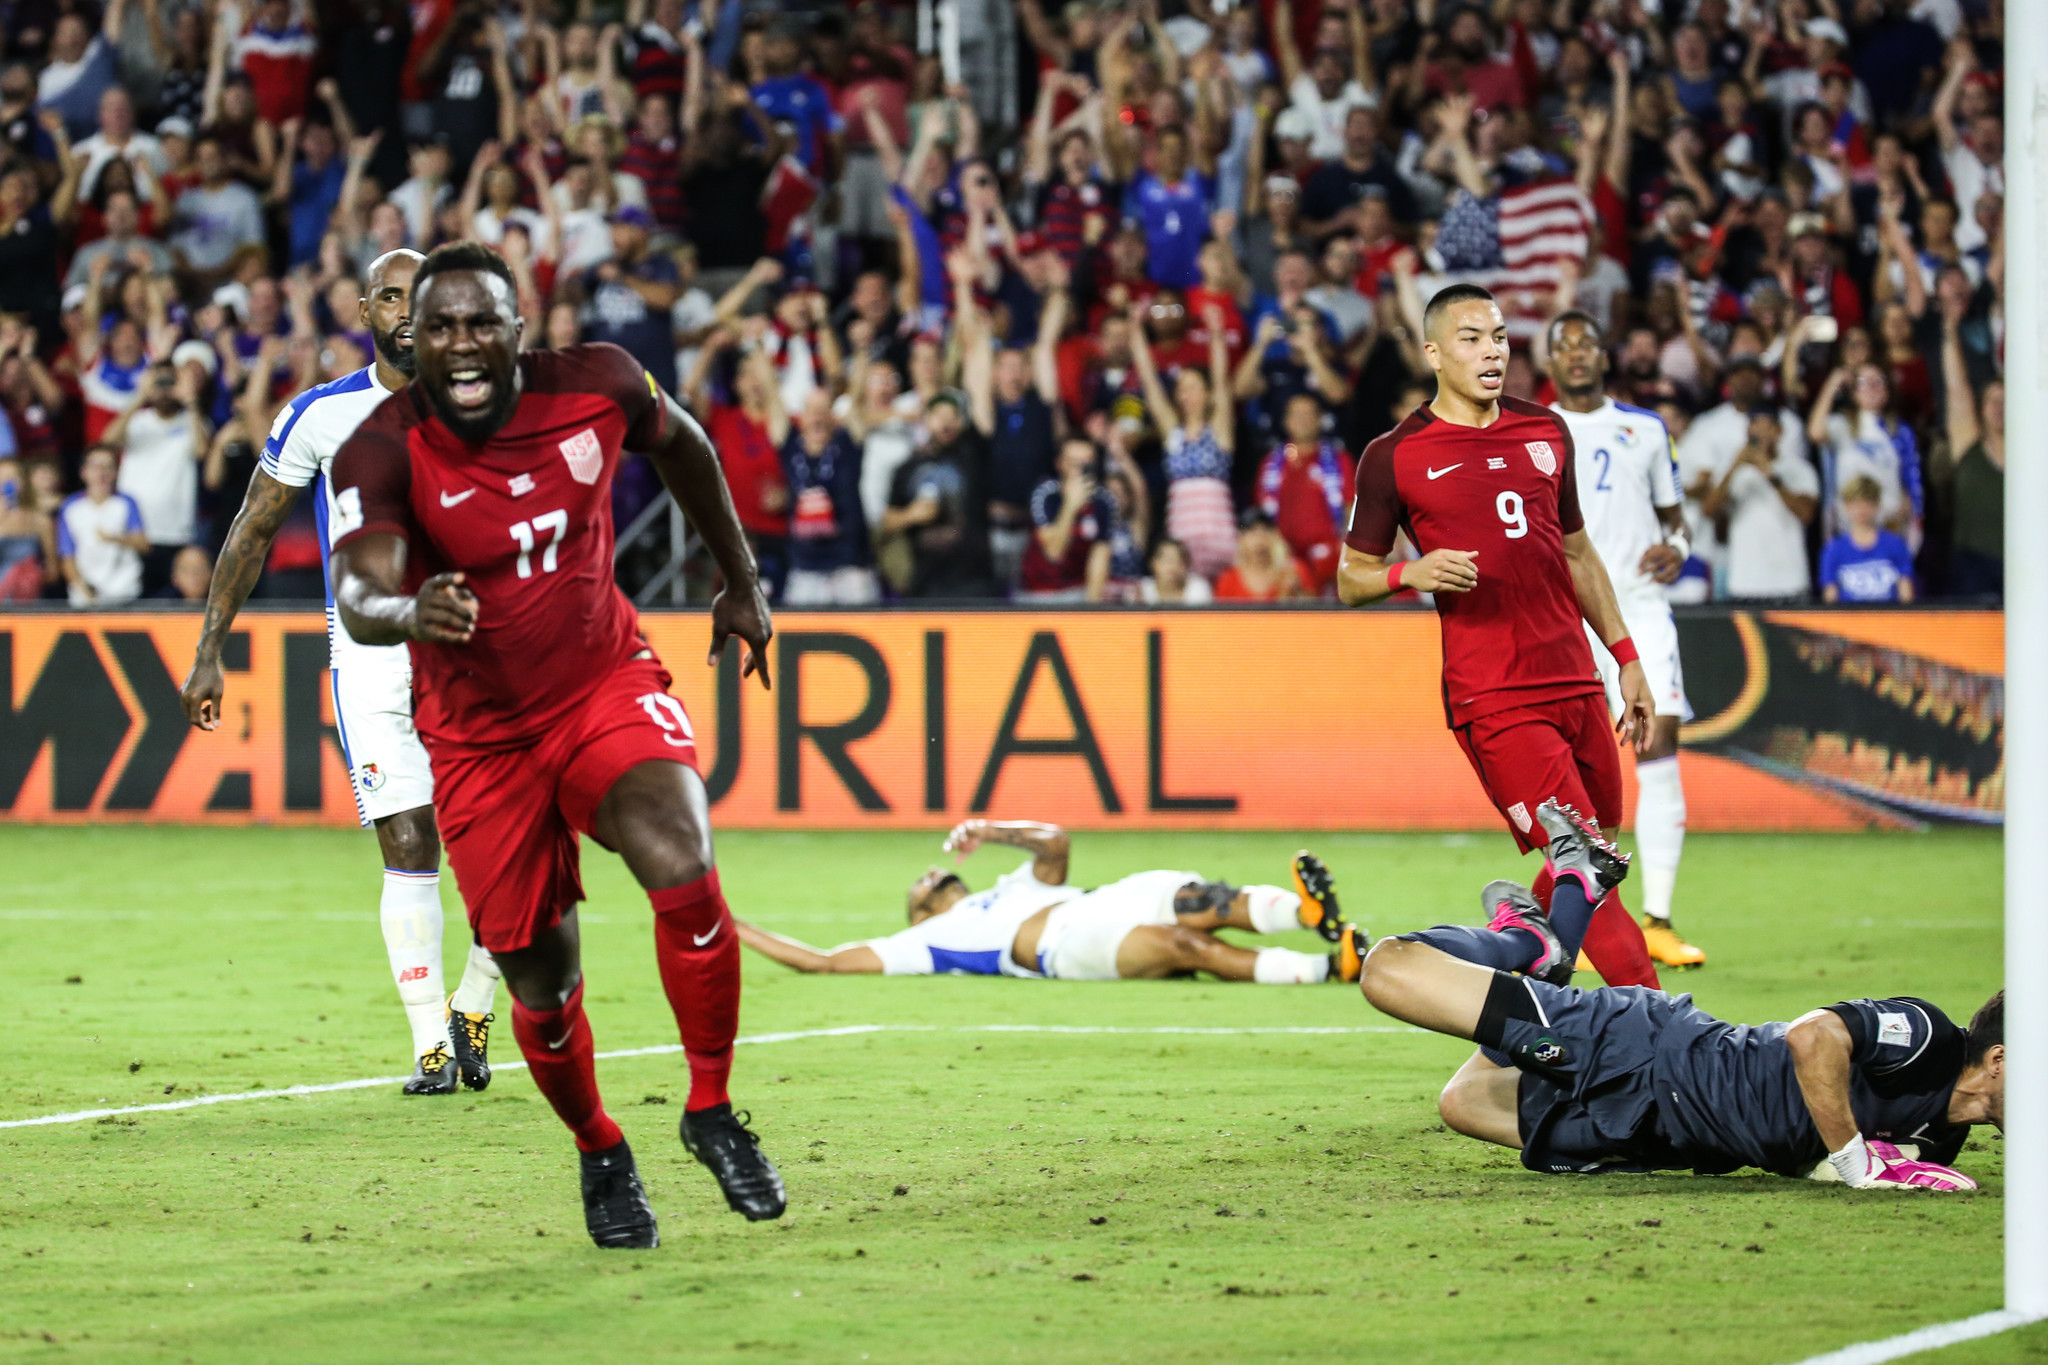 Os-usa-soccer-defeats-panama-in-world-cup-qualifier-20171006